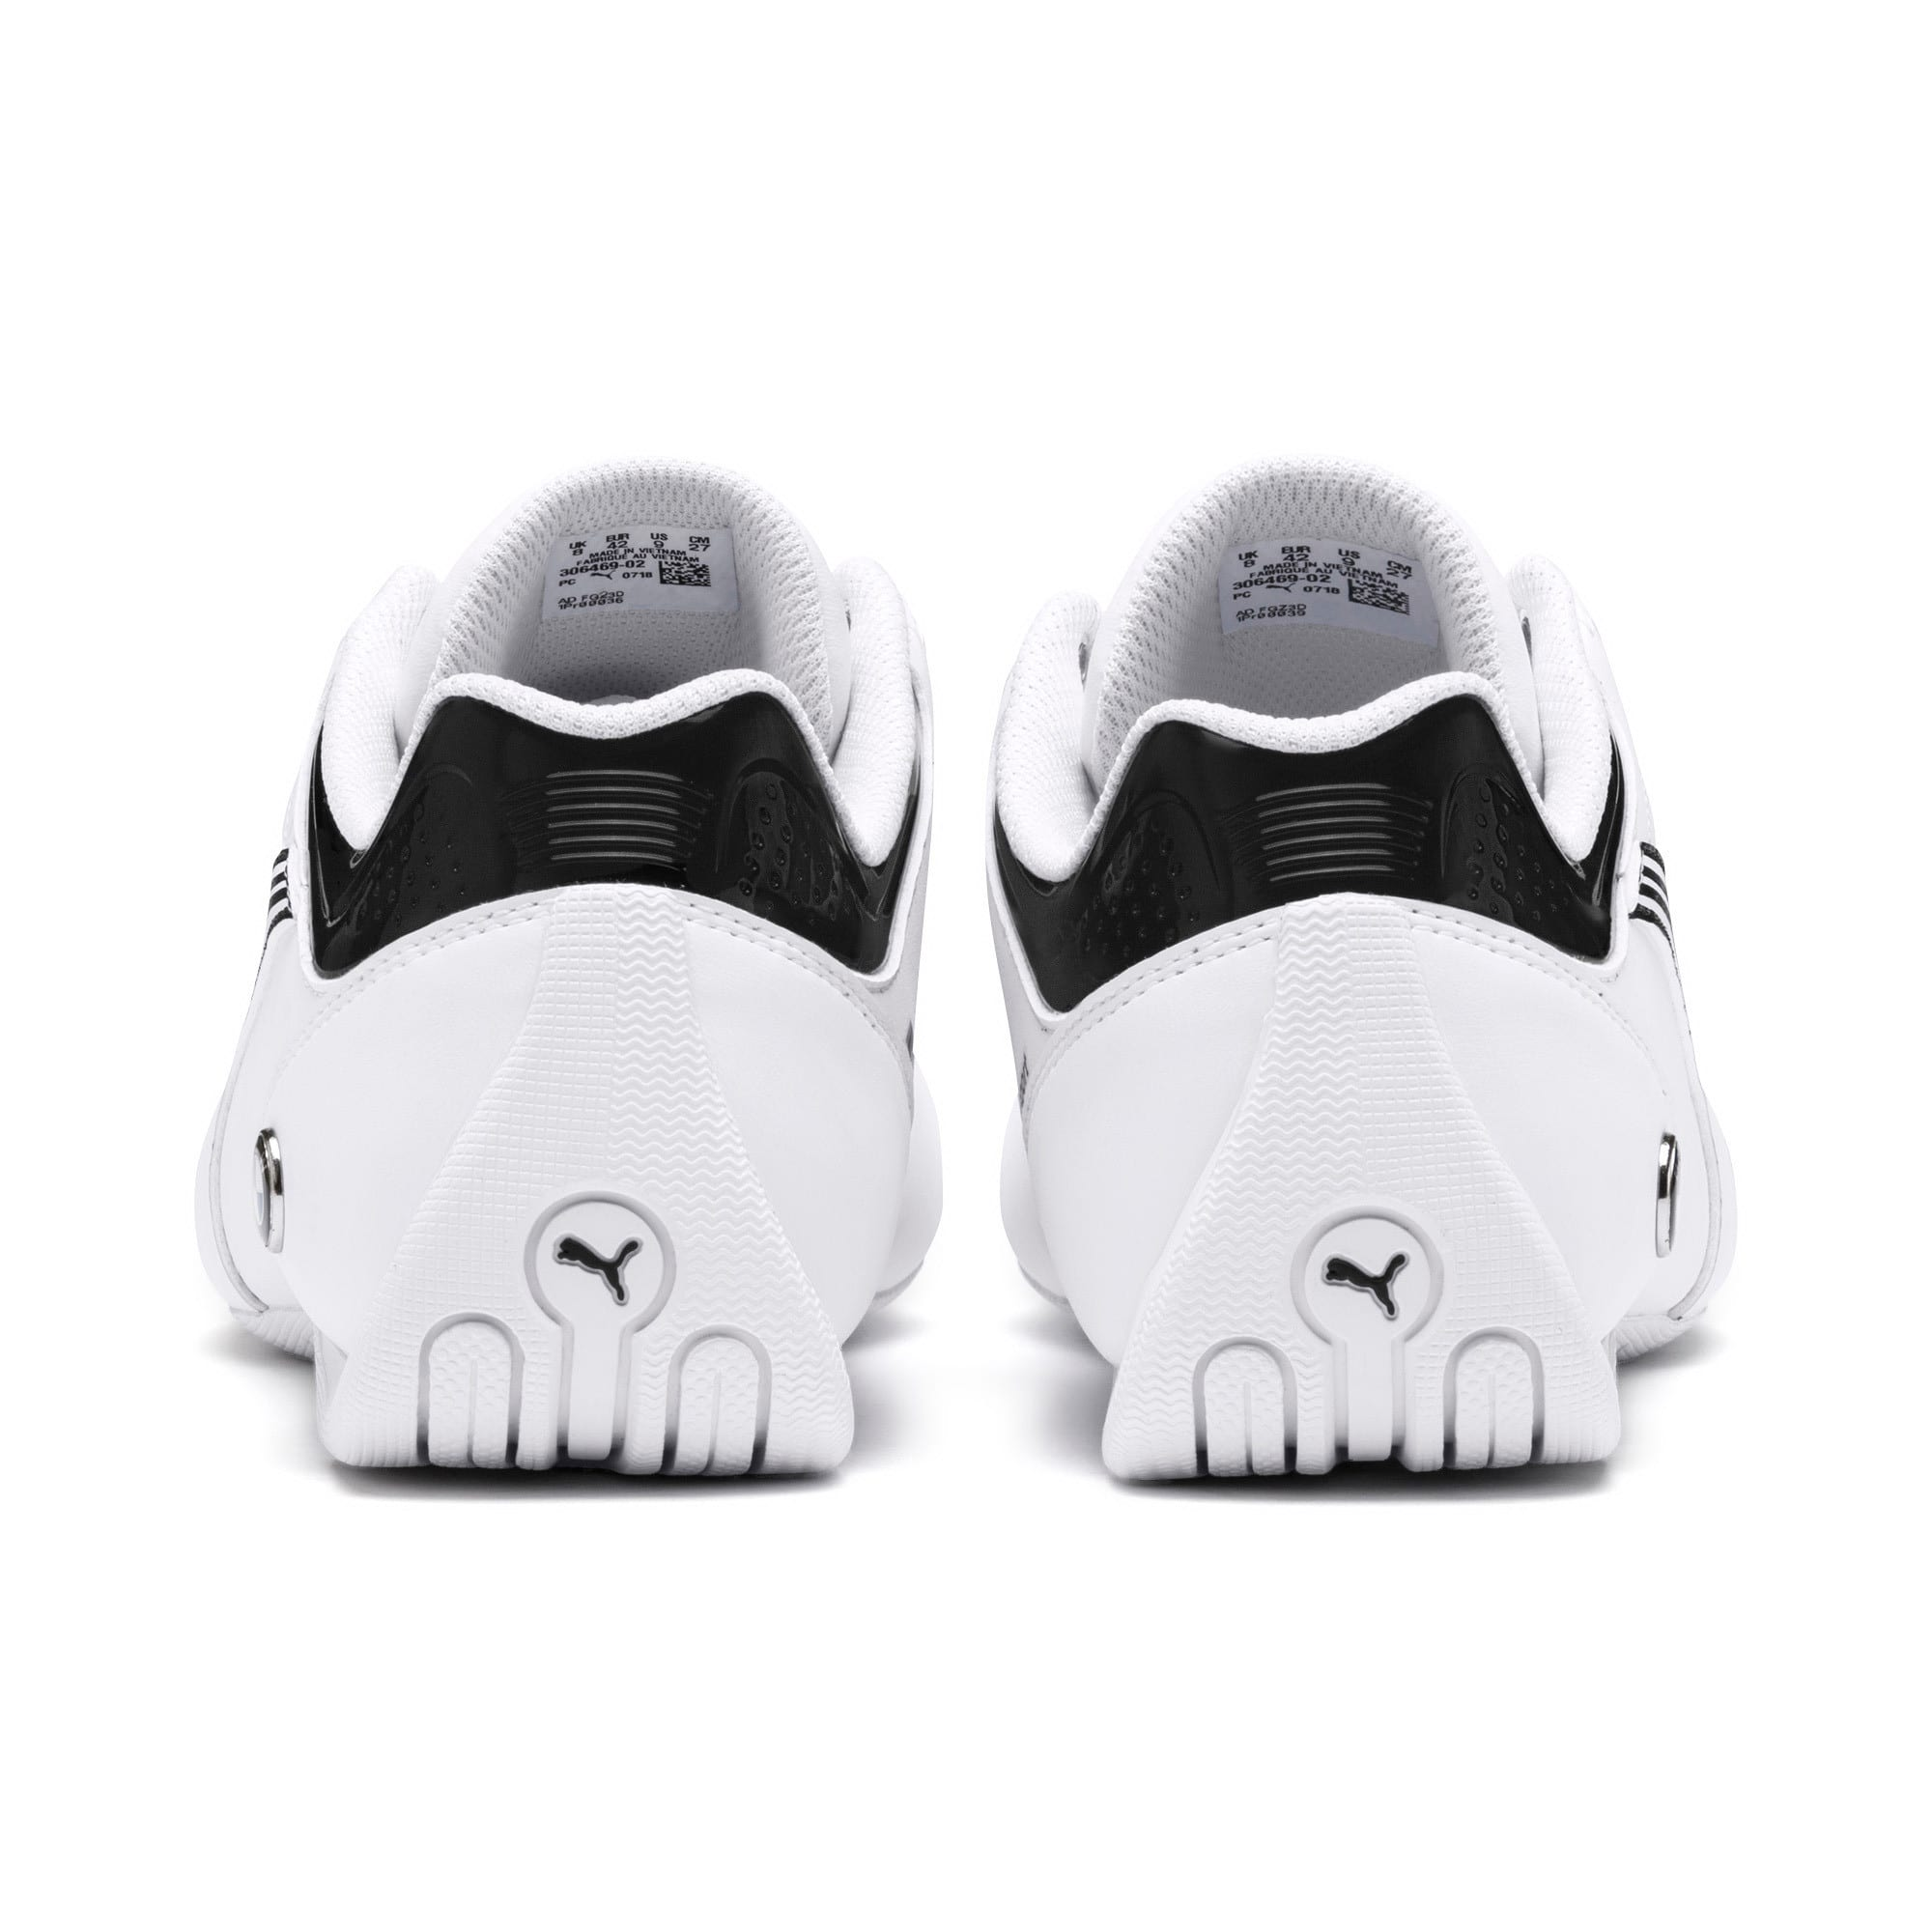 Miniatura 4 de Zapatos BMW M Motorsport Future Kart Cat, Puma White-Puma Black, mediano